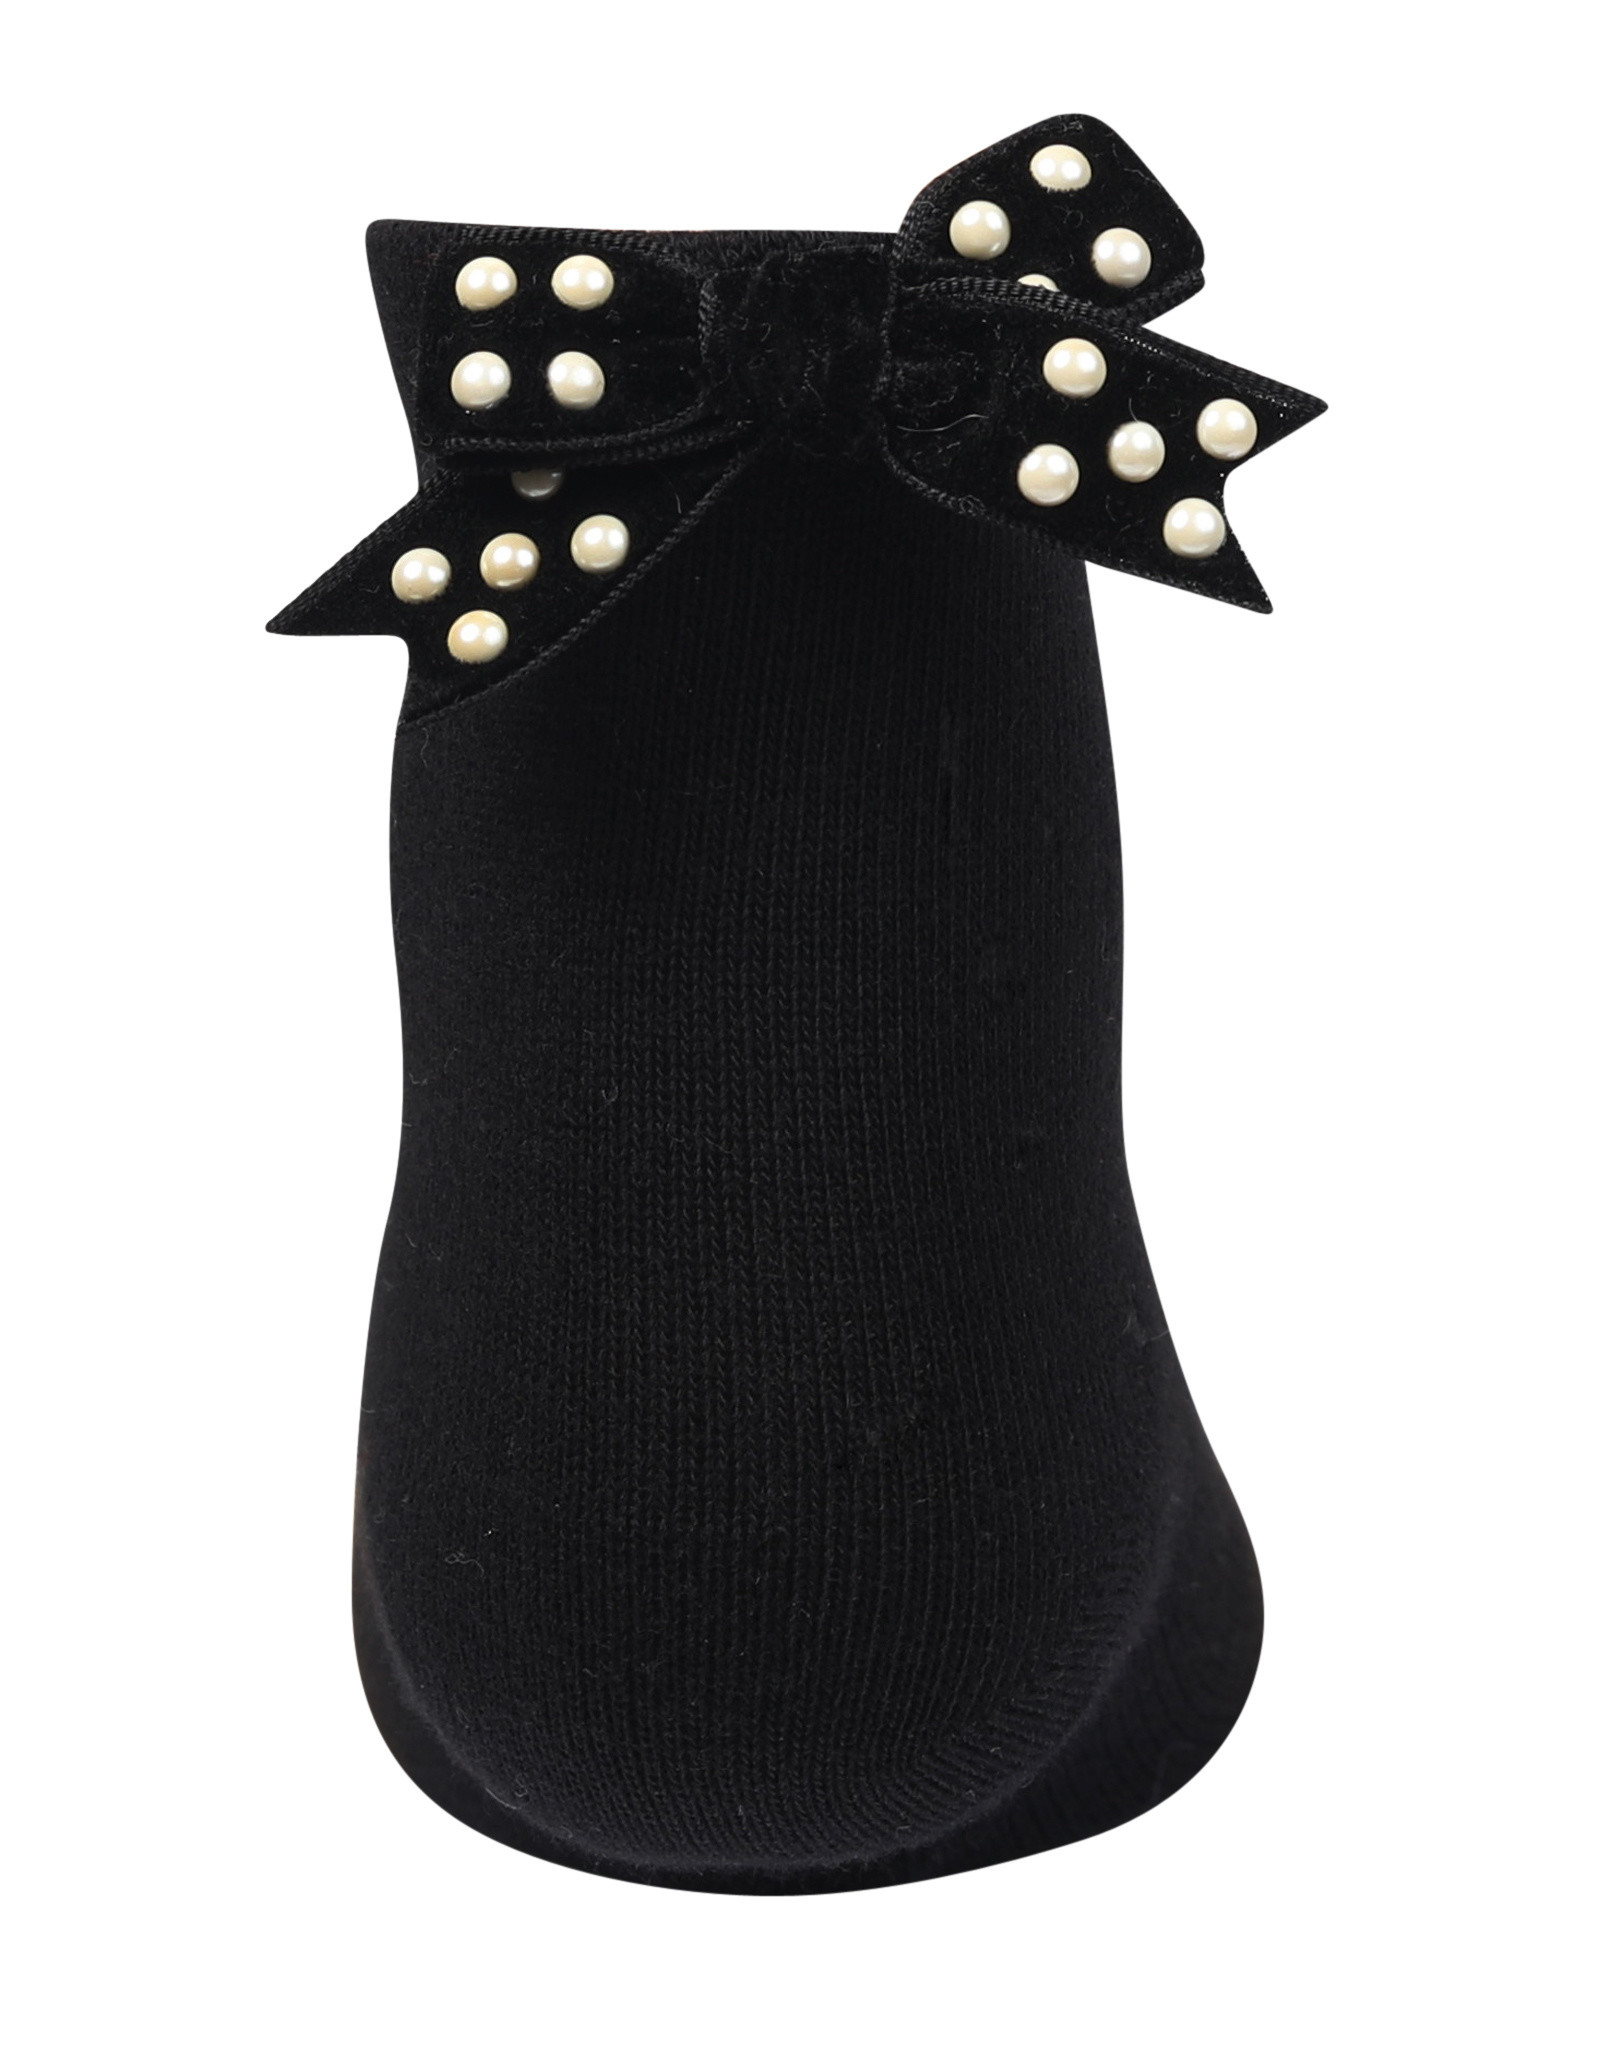 Zubii Zubii Bows and Pearls Anklet